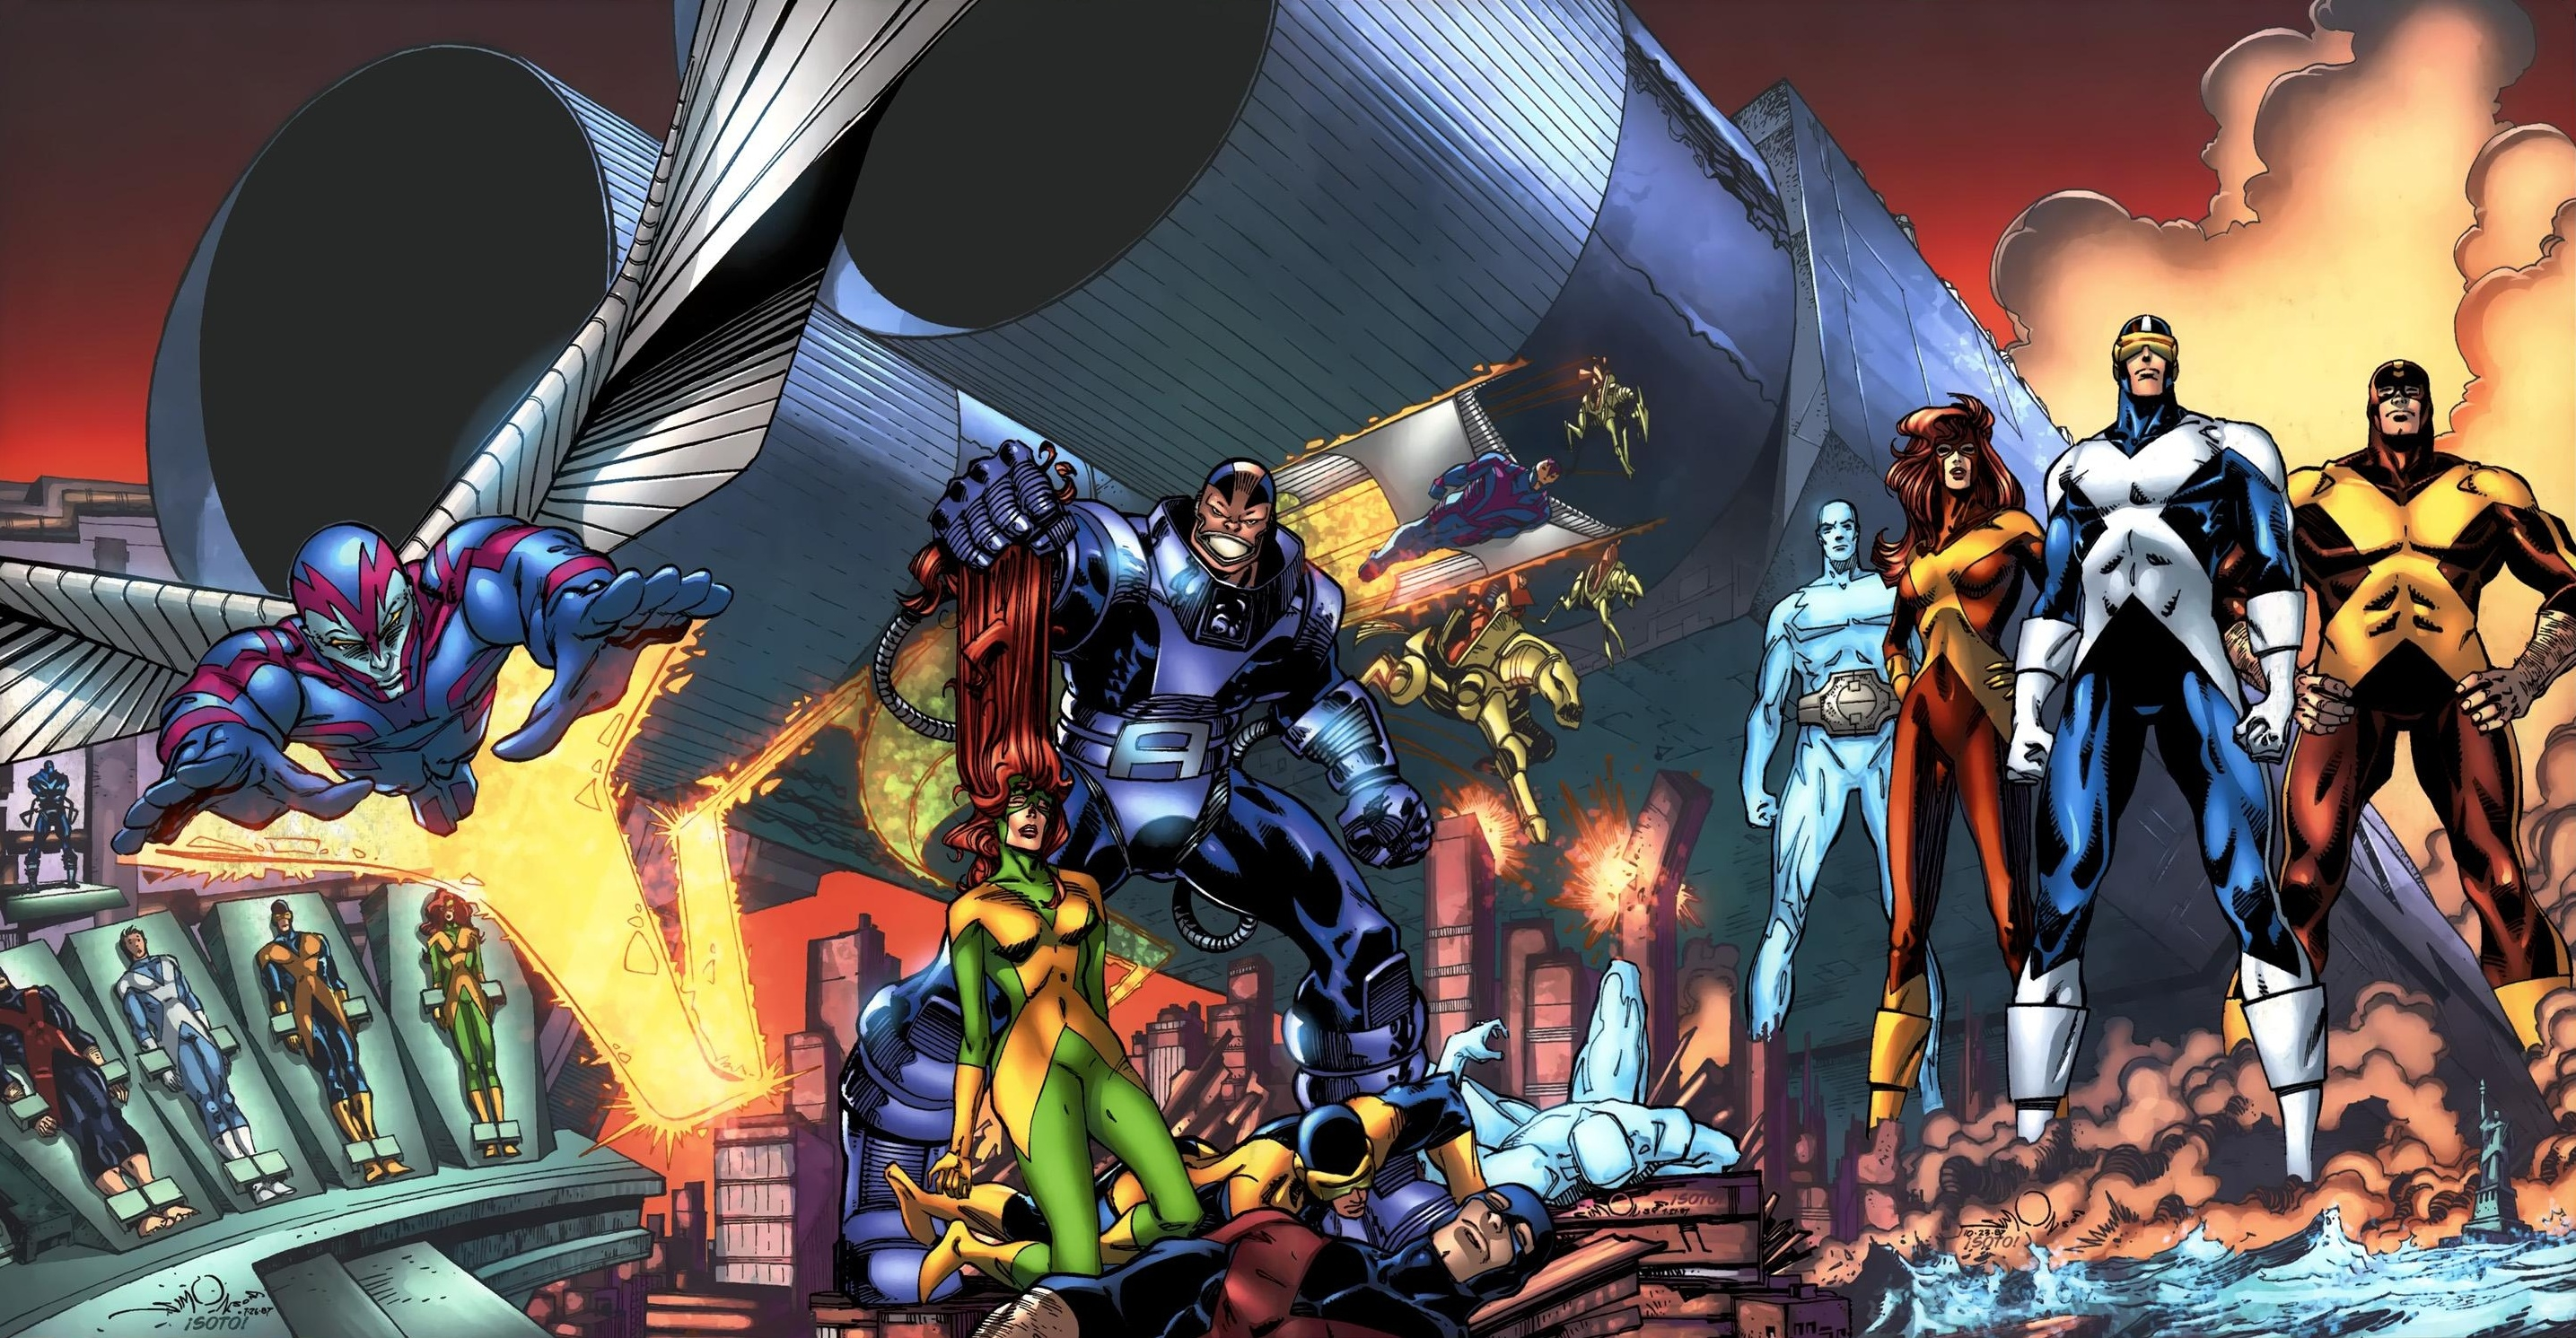 Men vs Apocalypse wallpapers and images   wallpapers pictures 2870x1491